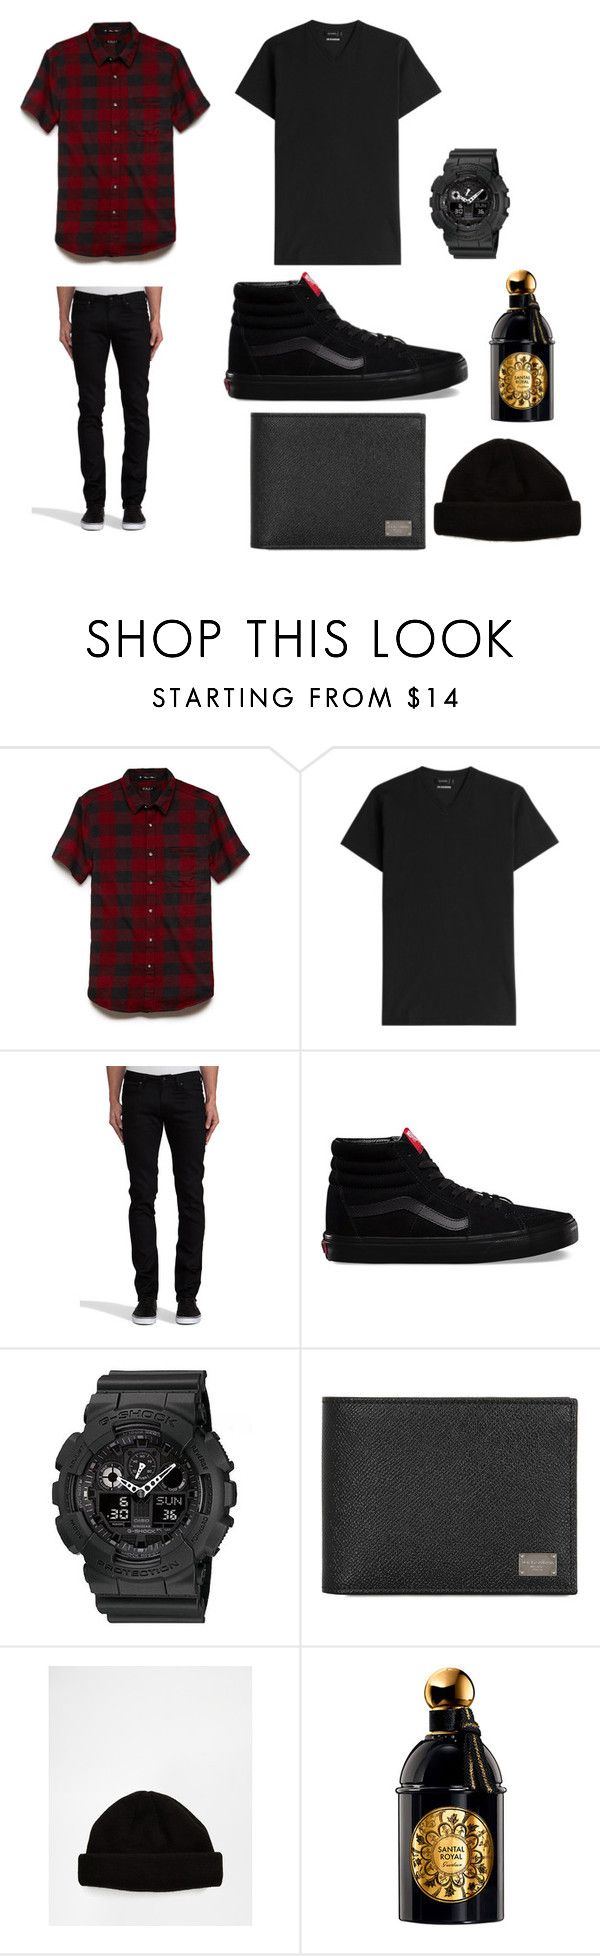 """SKATER STYLE"" by lindadacreator ❤ liked on Polyvore featuring 21 Men, Jil Sander, Naked & Famous, Vans, G-Shock, Dolce&Gabbana, ASOS, Guerlain, mens and men"